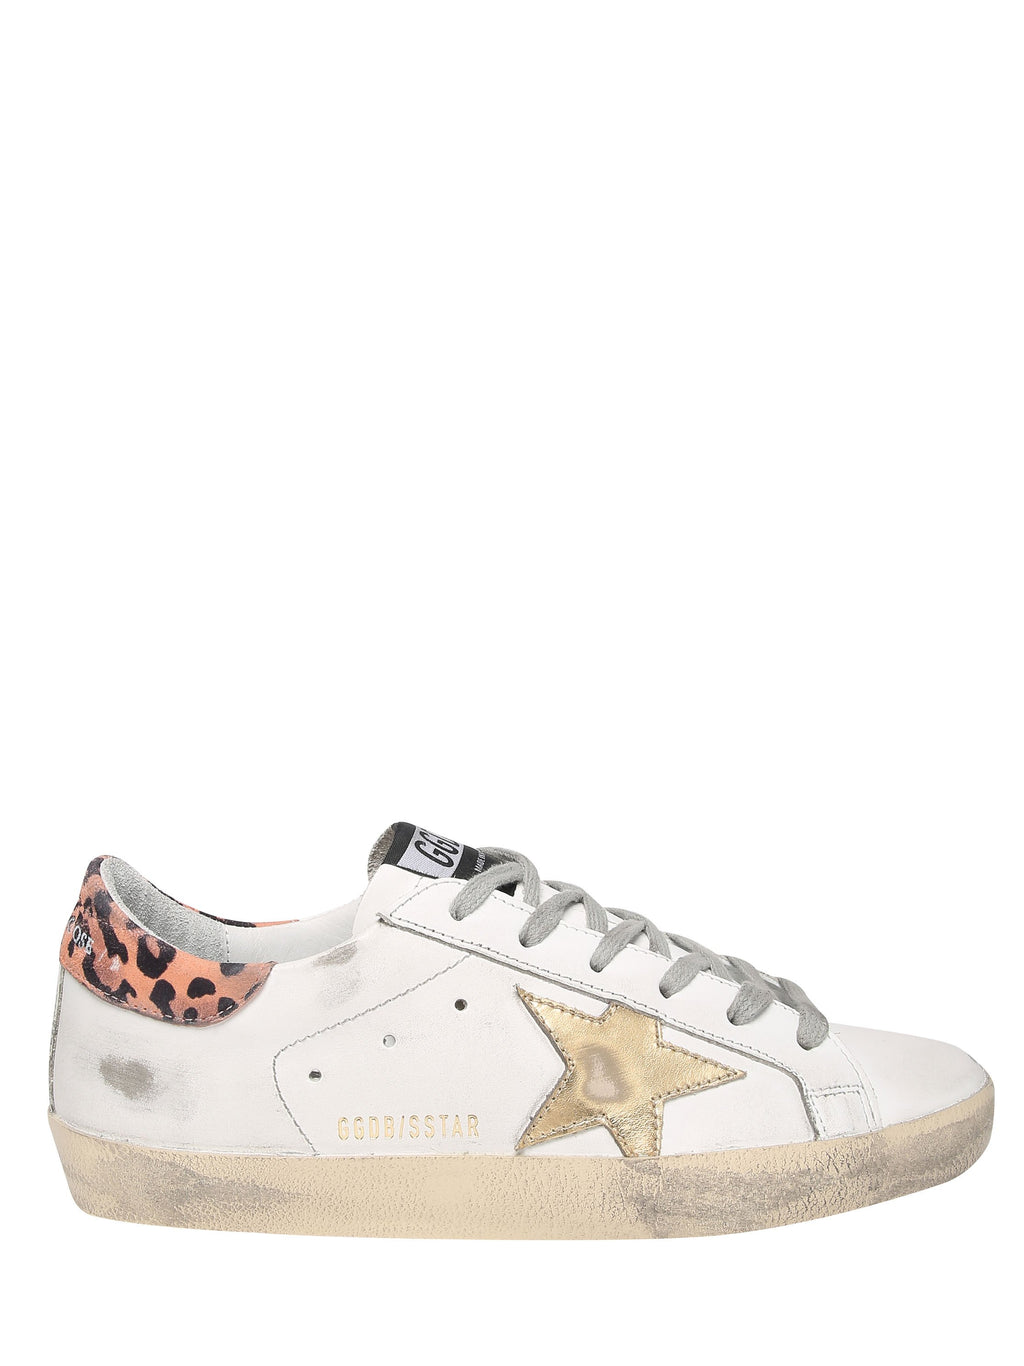 GOLDEN GOOSE Superstar model leather sneakers